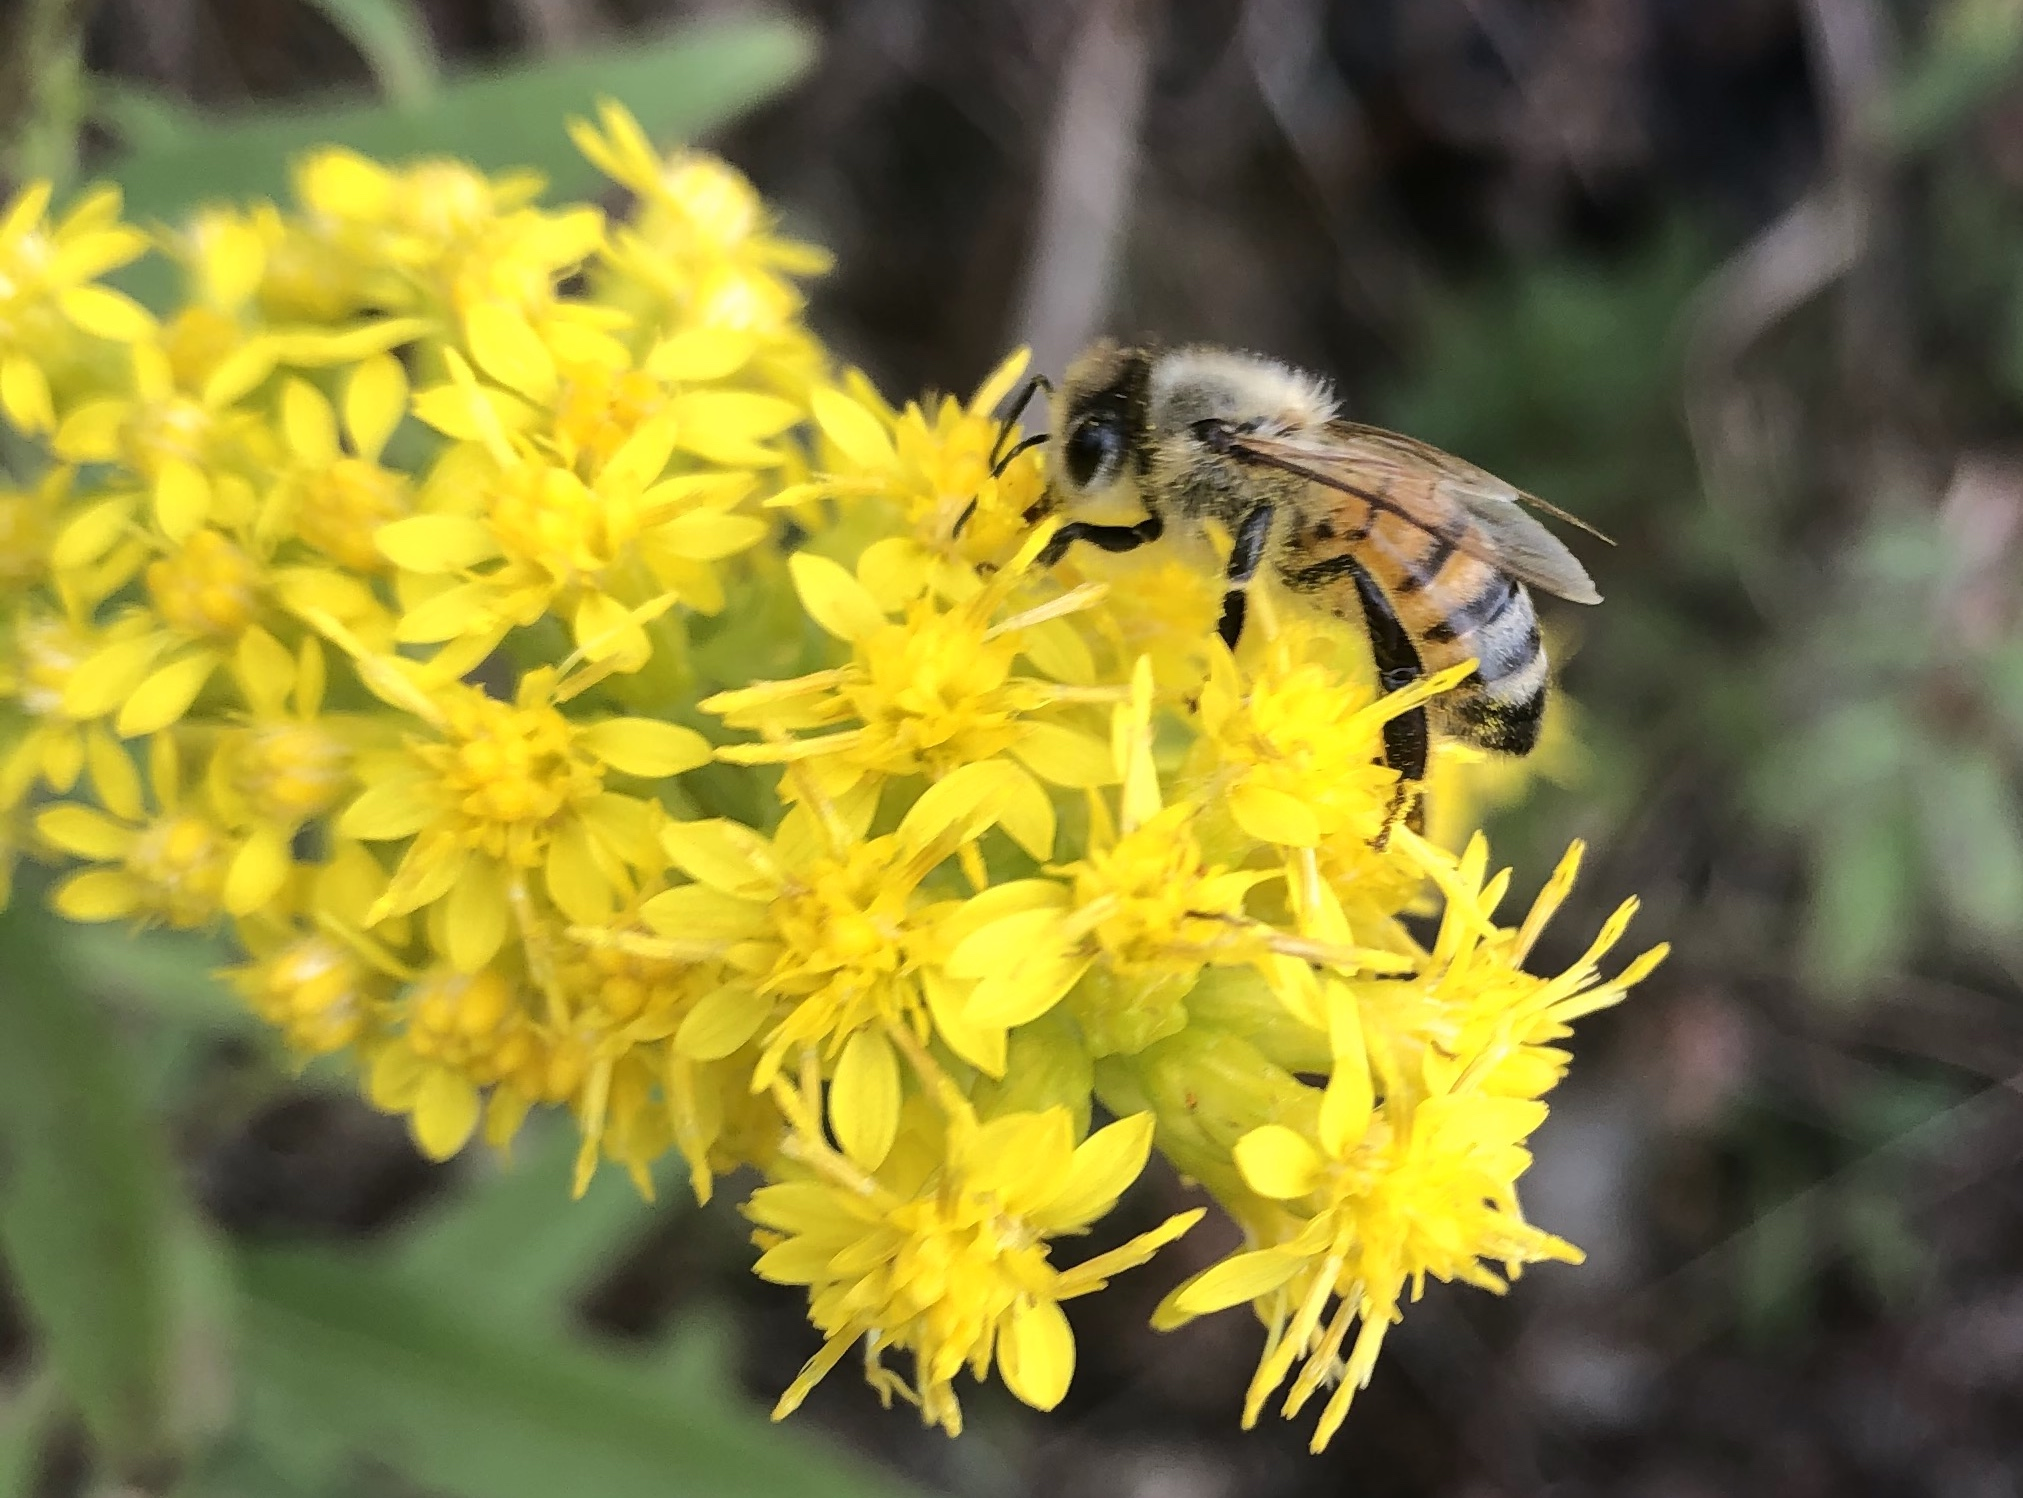 Bee on Showy Goldenrod on September 30, 2020 September 30, 2020.